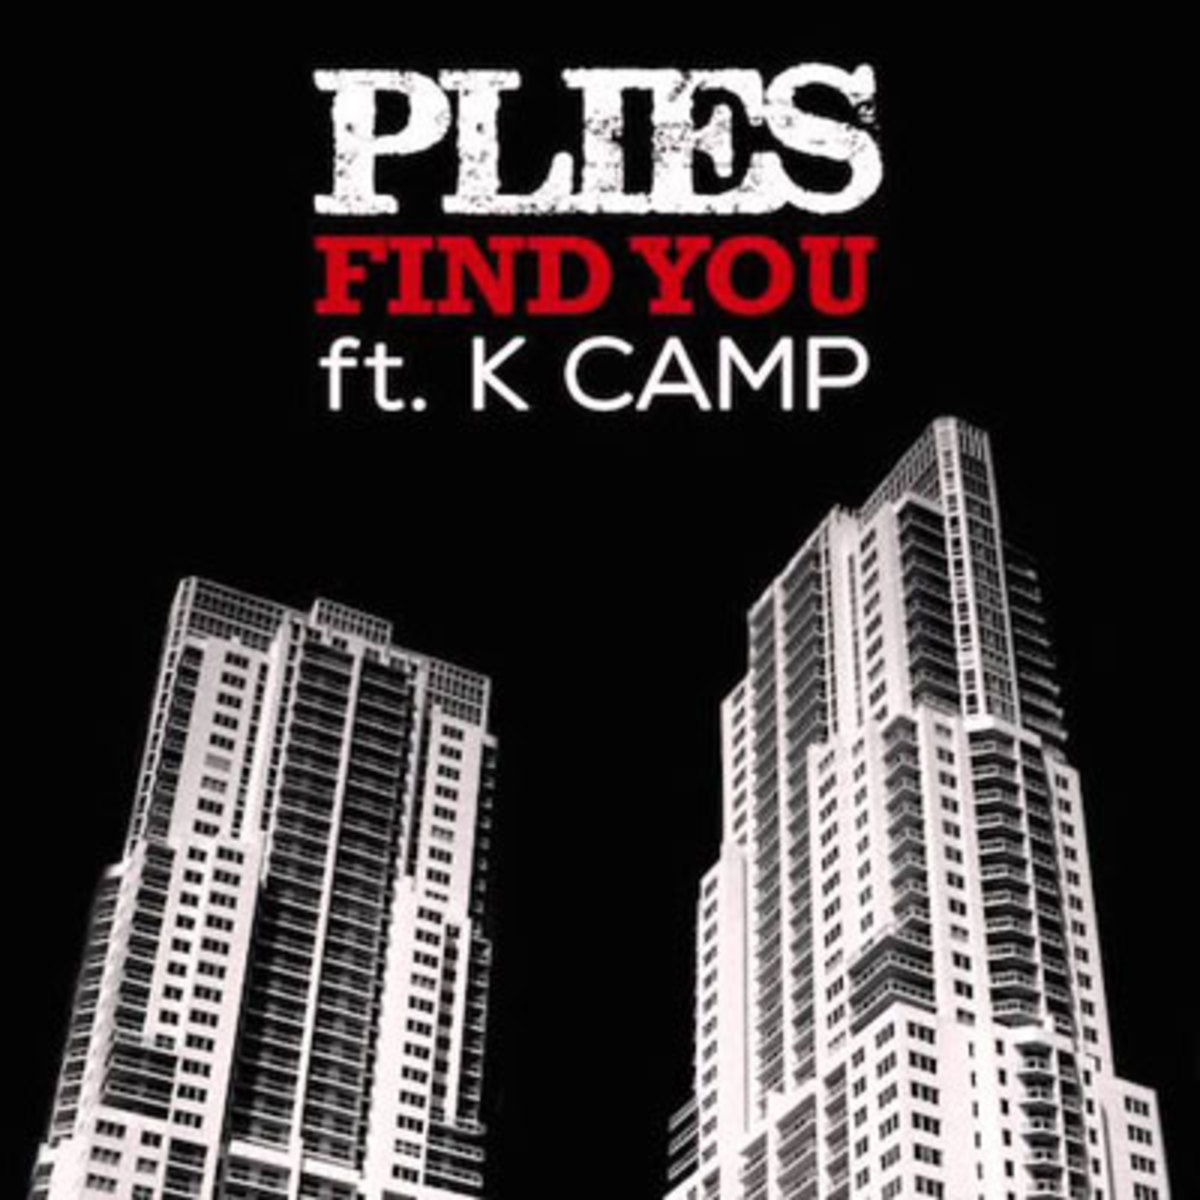 plies-findyou.jpg